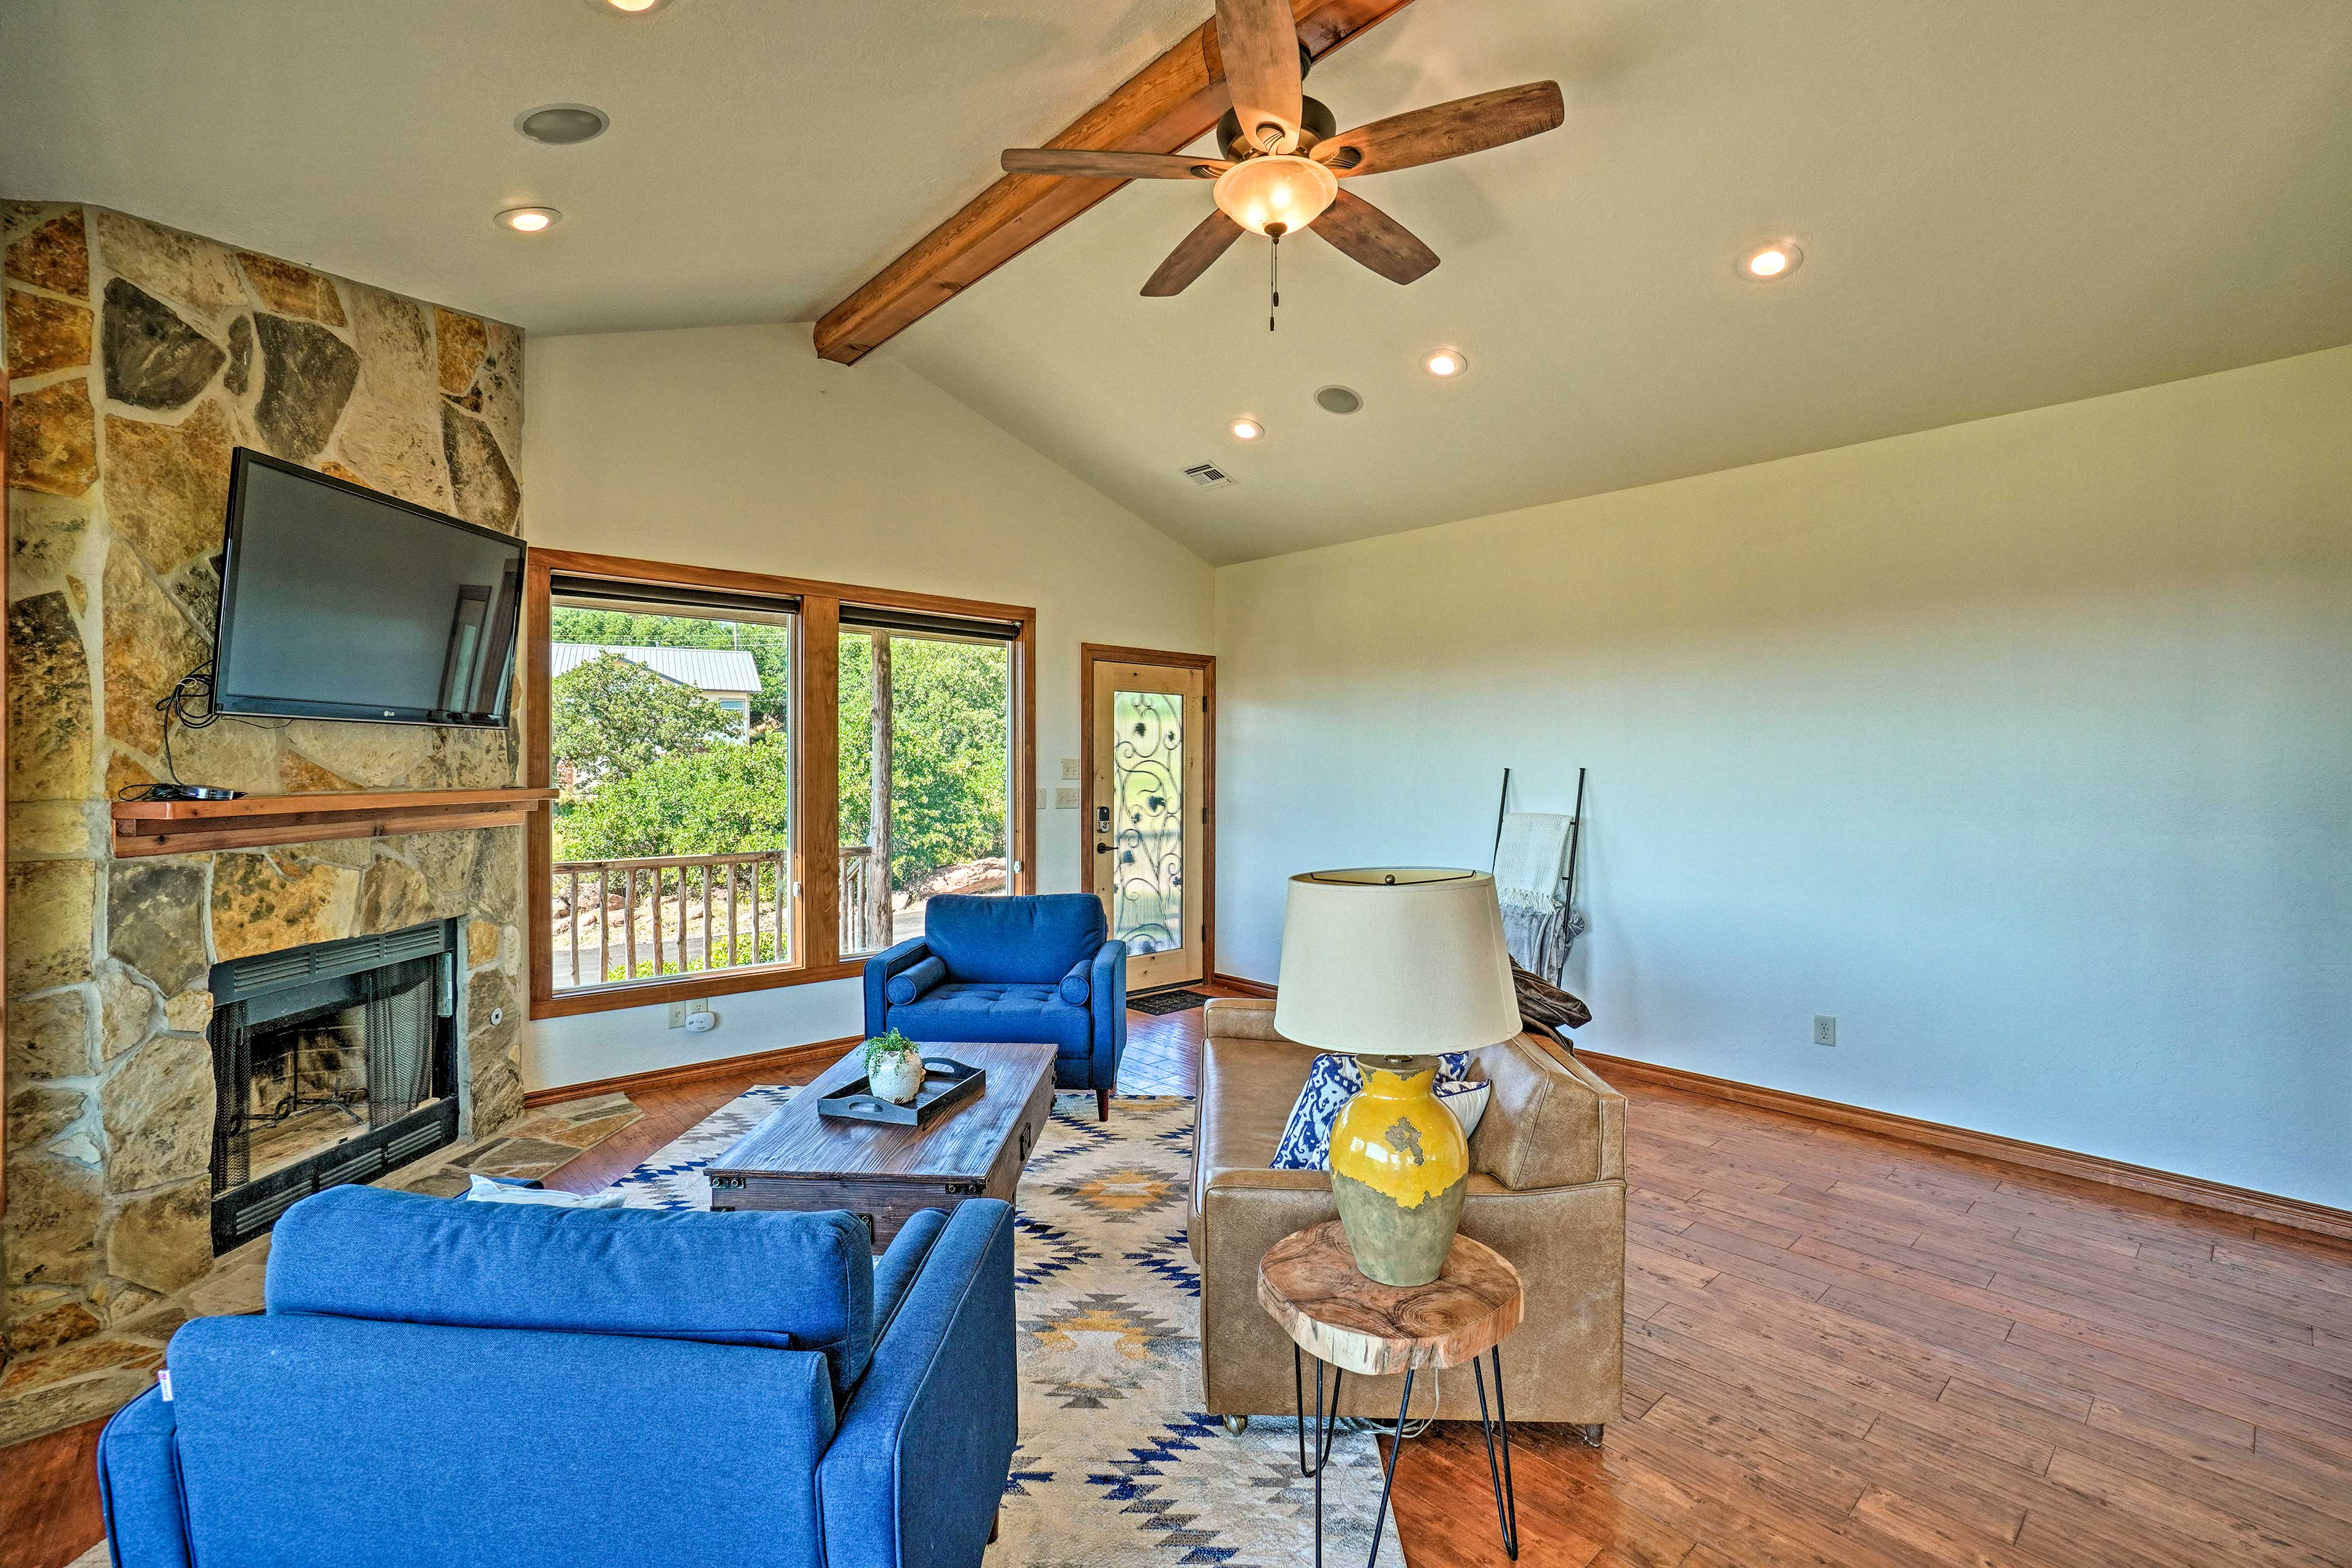 The living area features a Smart TV and cozy furnishings.